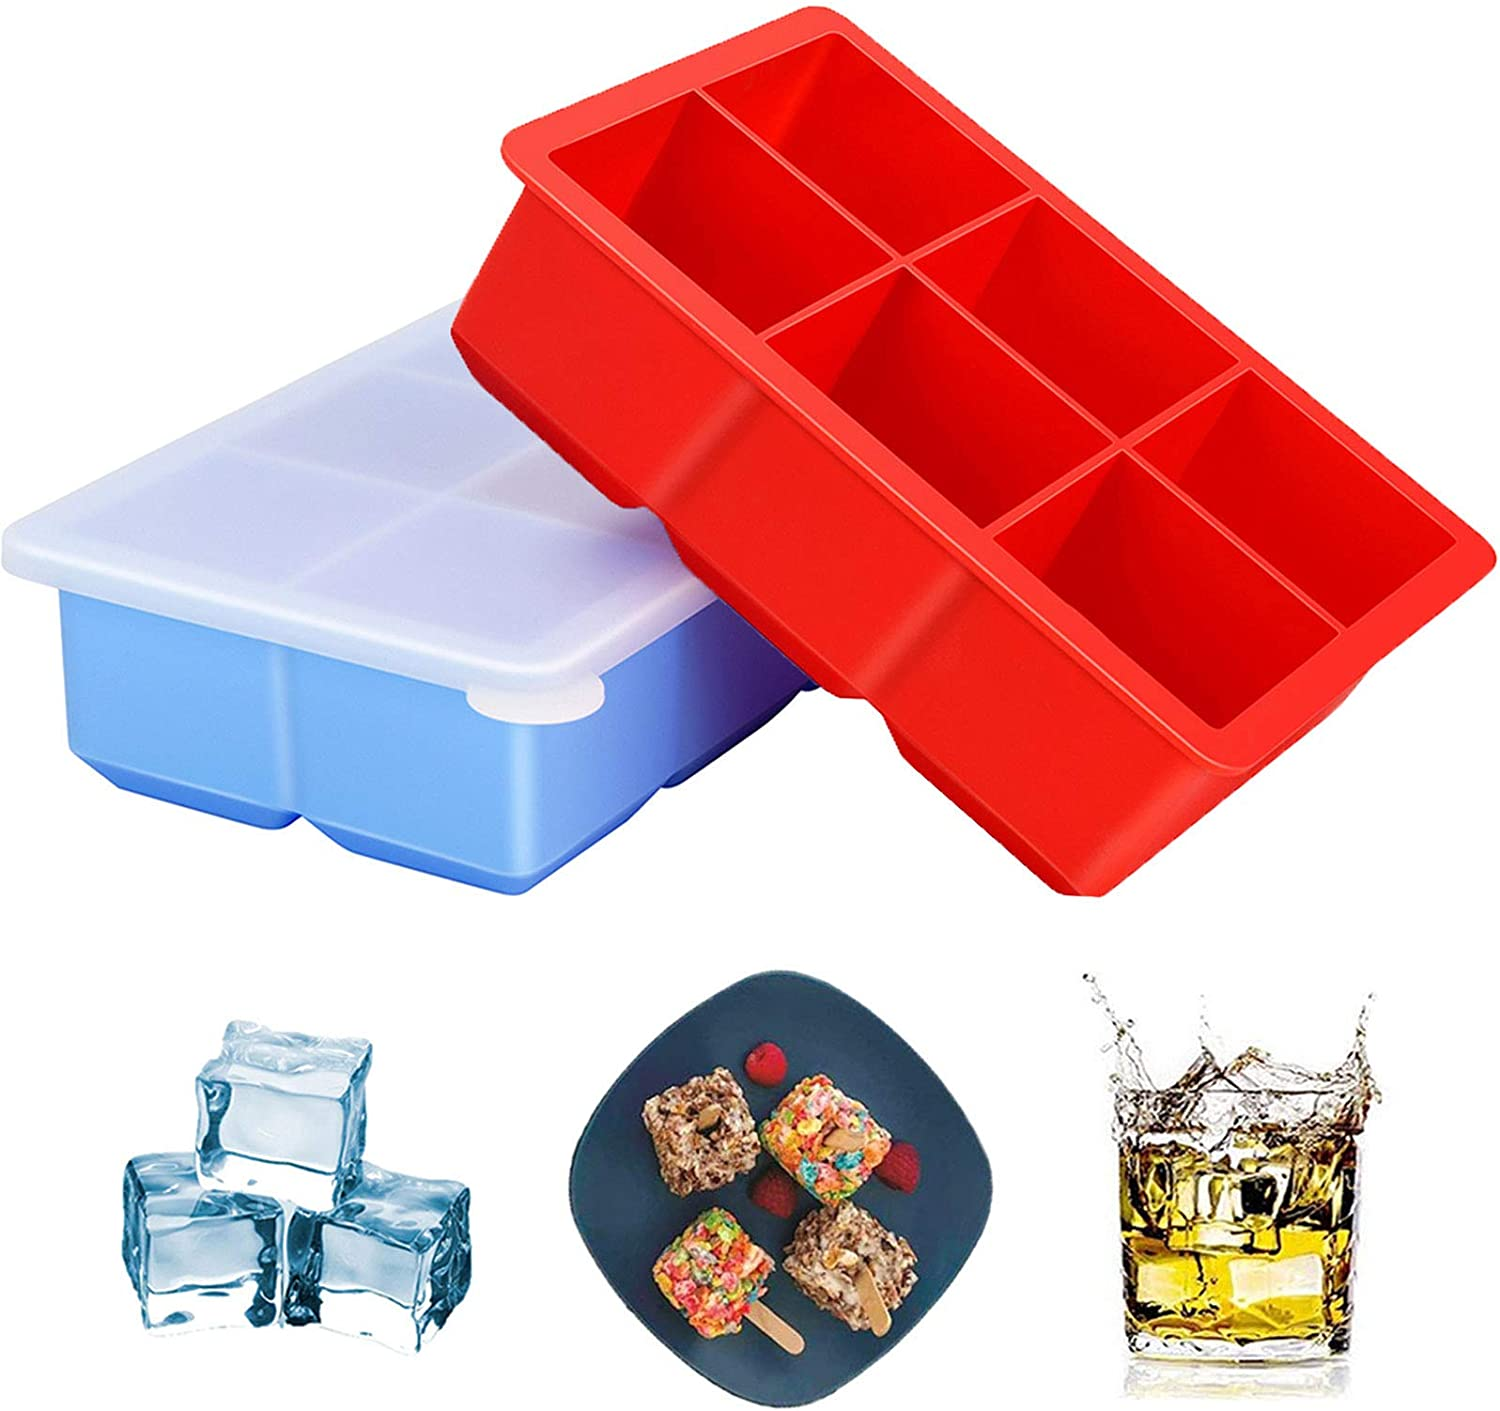 Jisiloe Large Ice Tray with Lid - Pack of 2, Silicone Flexible 6 Cavity Ice Molds for Whiskey, Cocktails and Baby Food - 2 Inch Square Cubes Stackable Easy Release, Reusable & Nontoxic Ice Cube